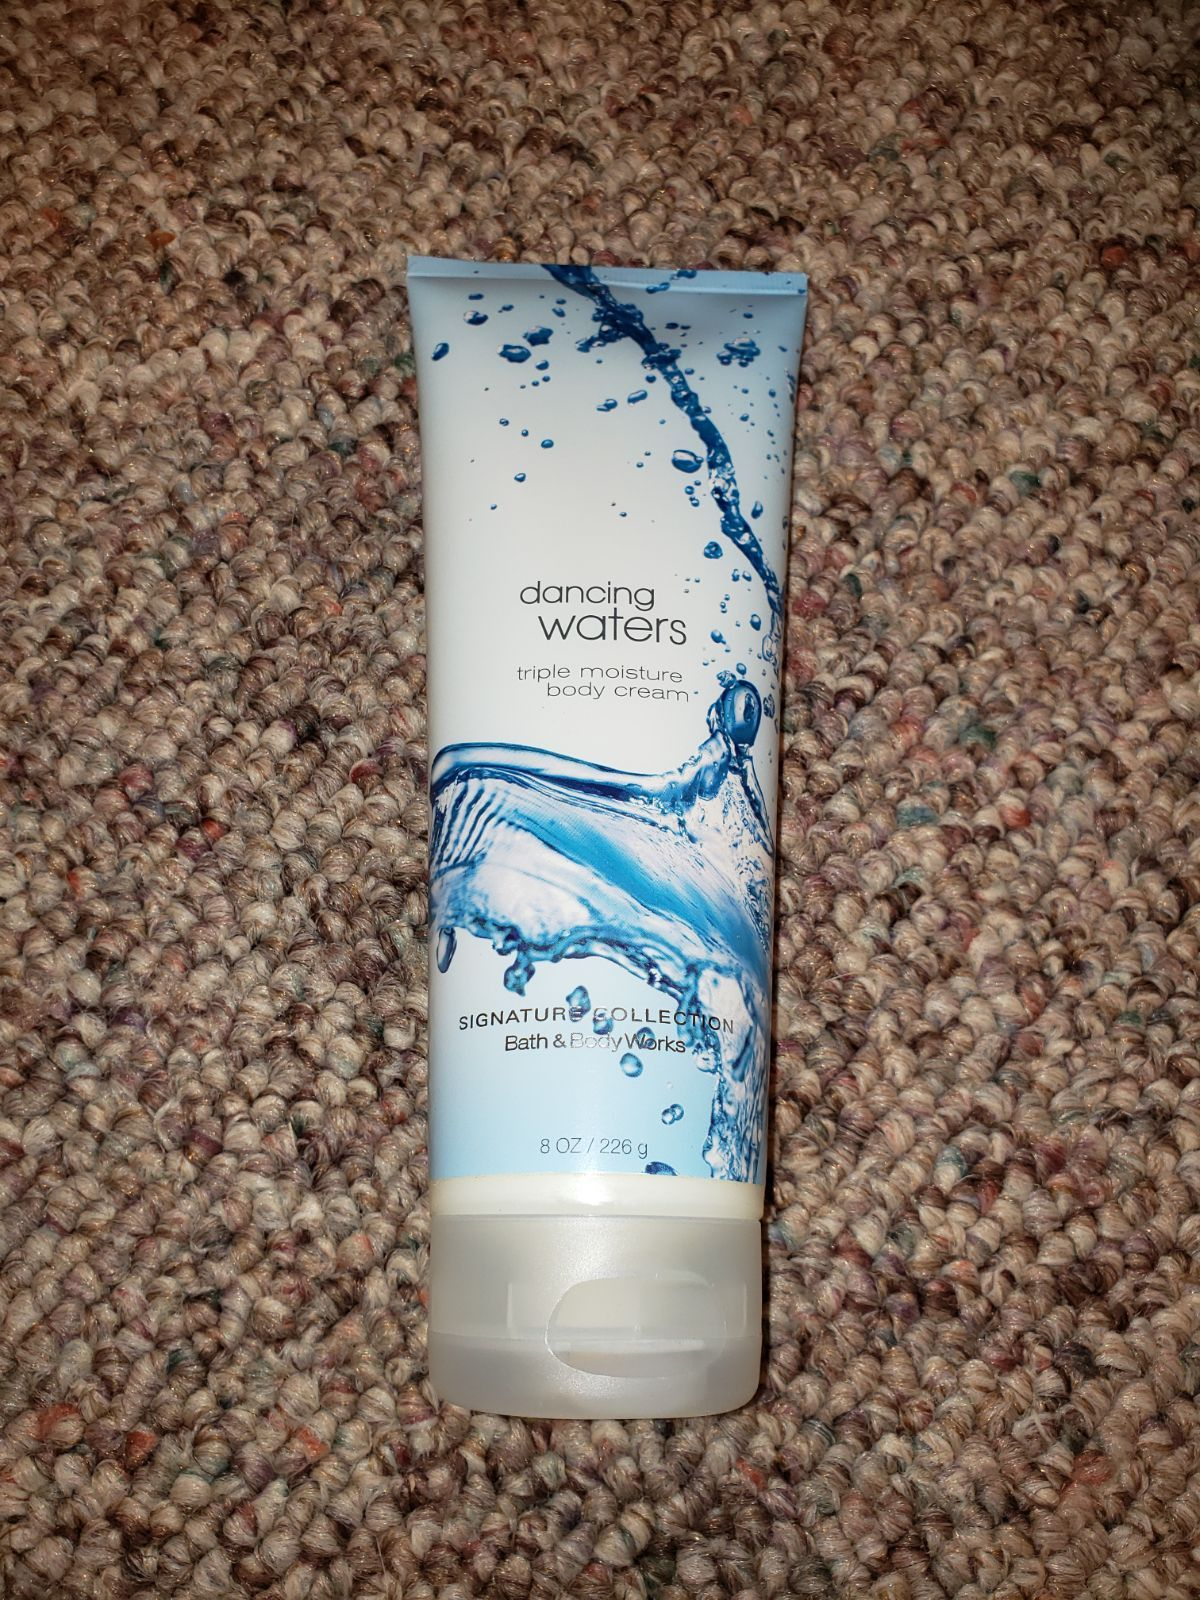 Dancing Waters Body Butter Lotion Bath Body Works Body Butter